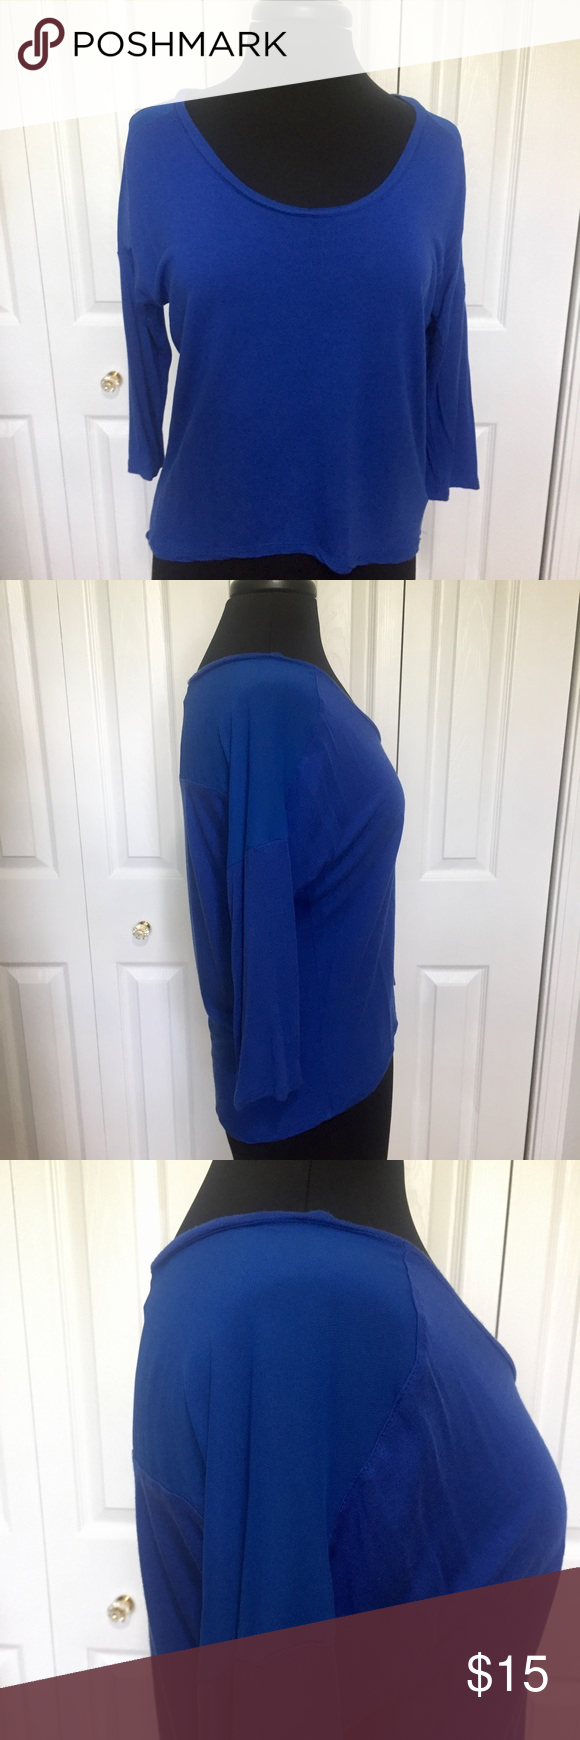 Marcelle blue 3/4 sleeve top with sheer inserts This top is in good condition without any rips or stains. Hi-lo, 3/4 sleeve, with sheer insert in back and top of sleeve area. Unable to get accurate sleeve length measurement due to make of sleeve. Measurements taken flat and in inches. Armpit to armpit 23. Center front to hem 14. Center back to hem 221/2. Marcelle Tops Blouses